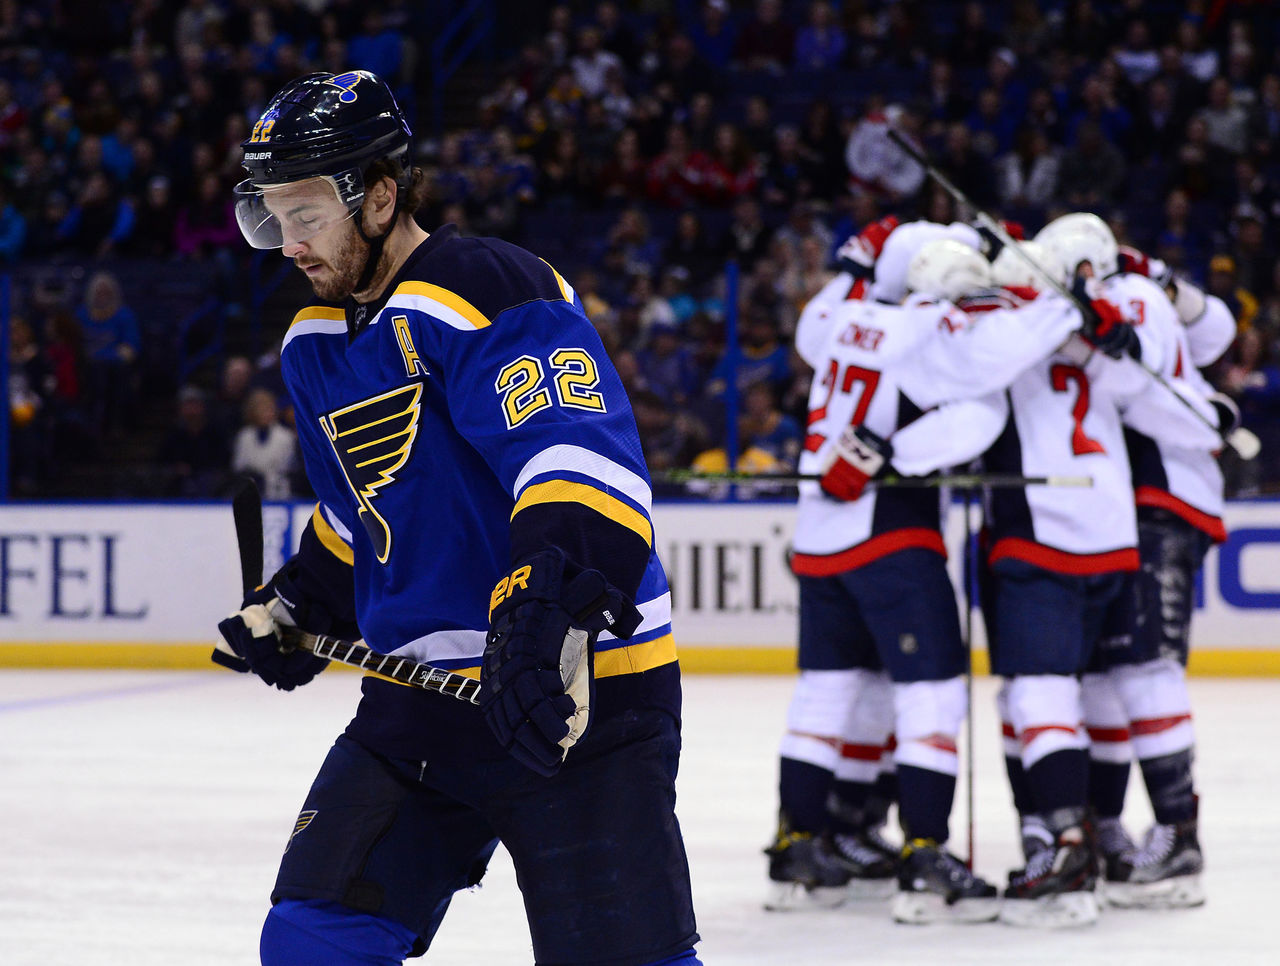 Cropped 2017 01 20t021634z 1898195841 nocid rtrmadp 3 nhl washington capitals at st louis blues